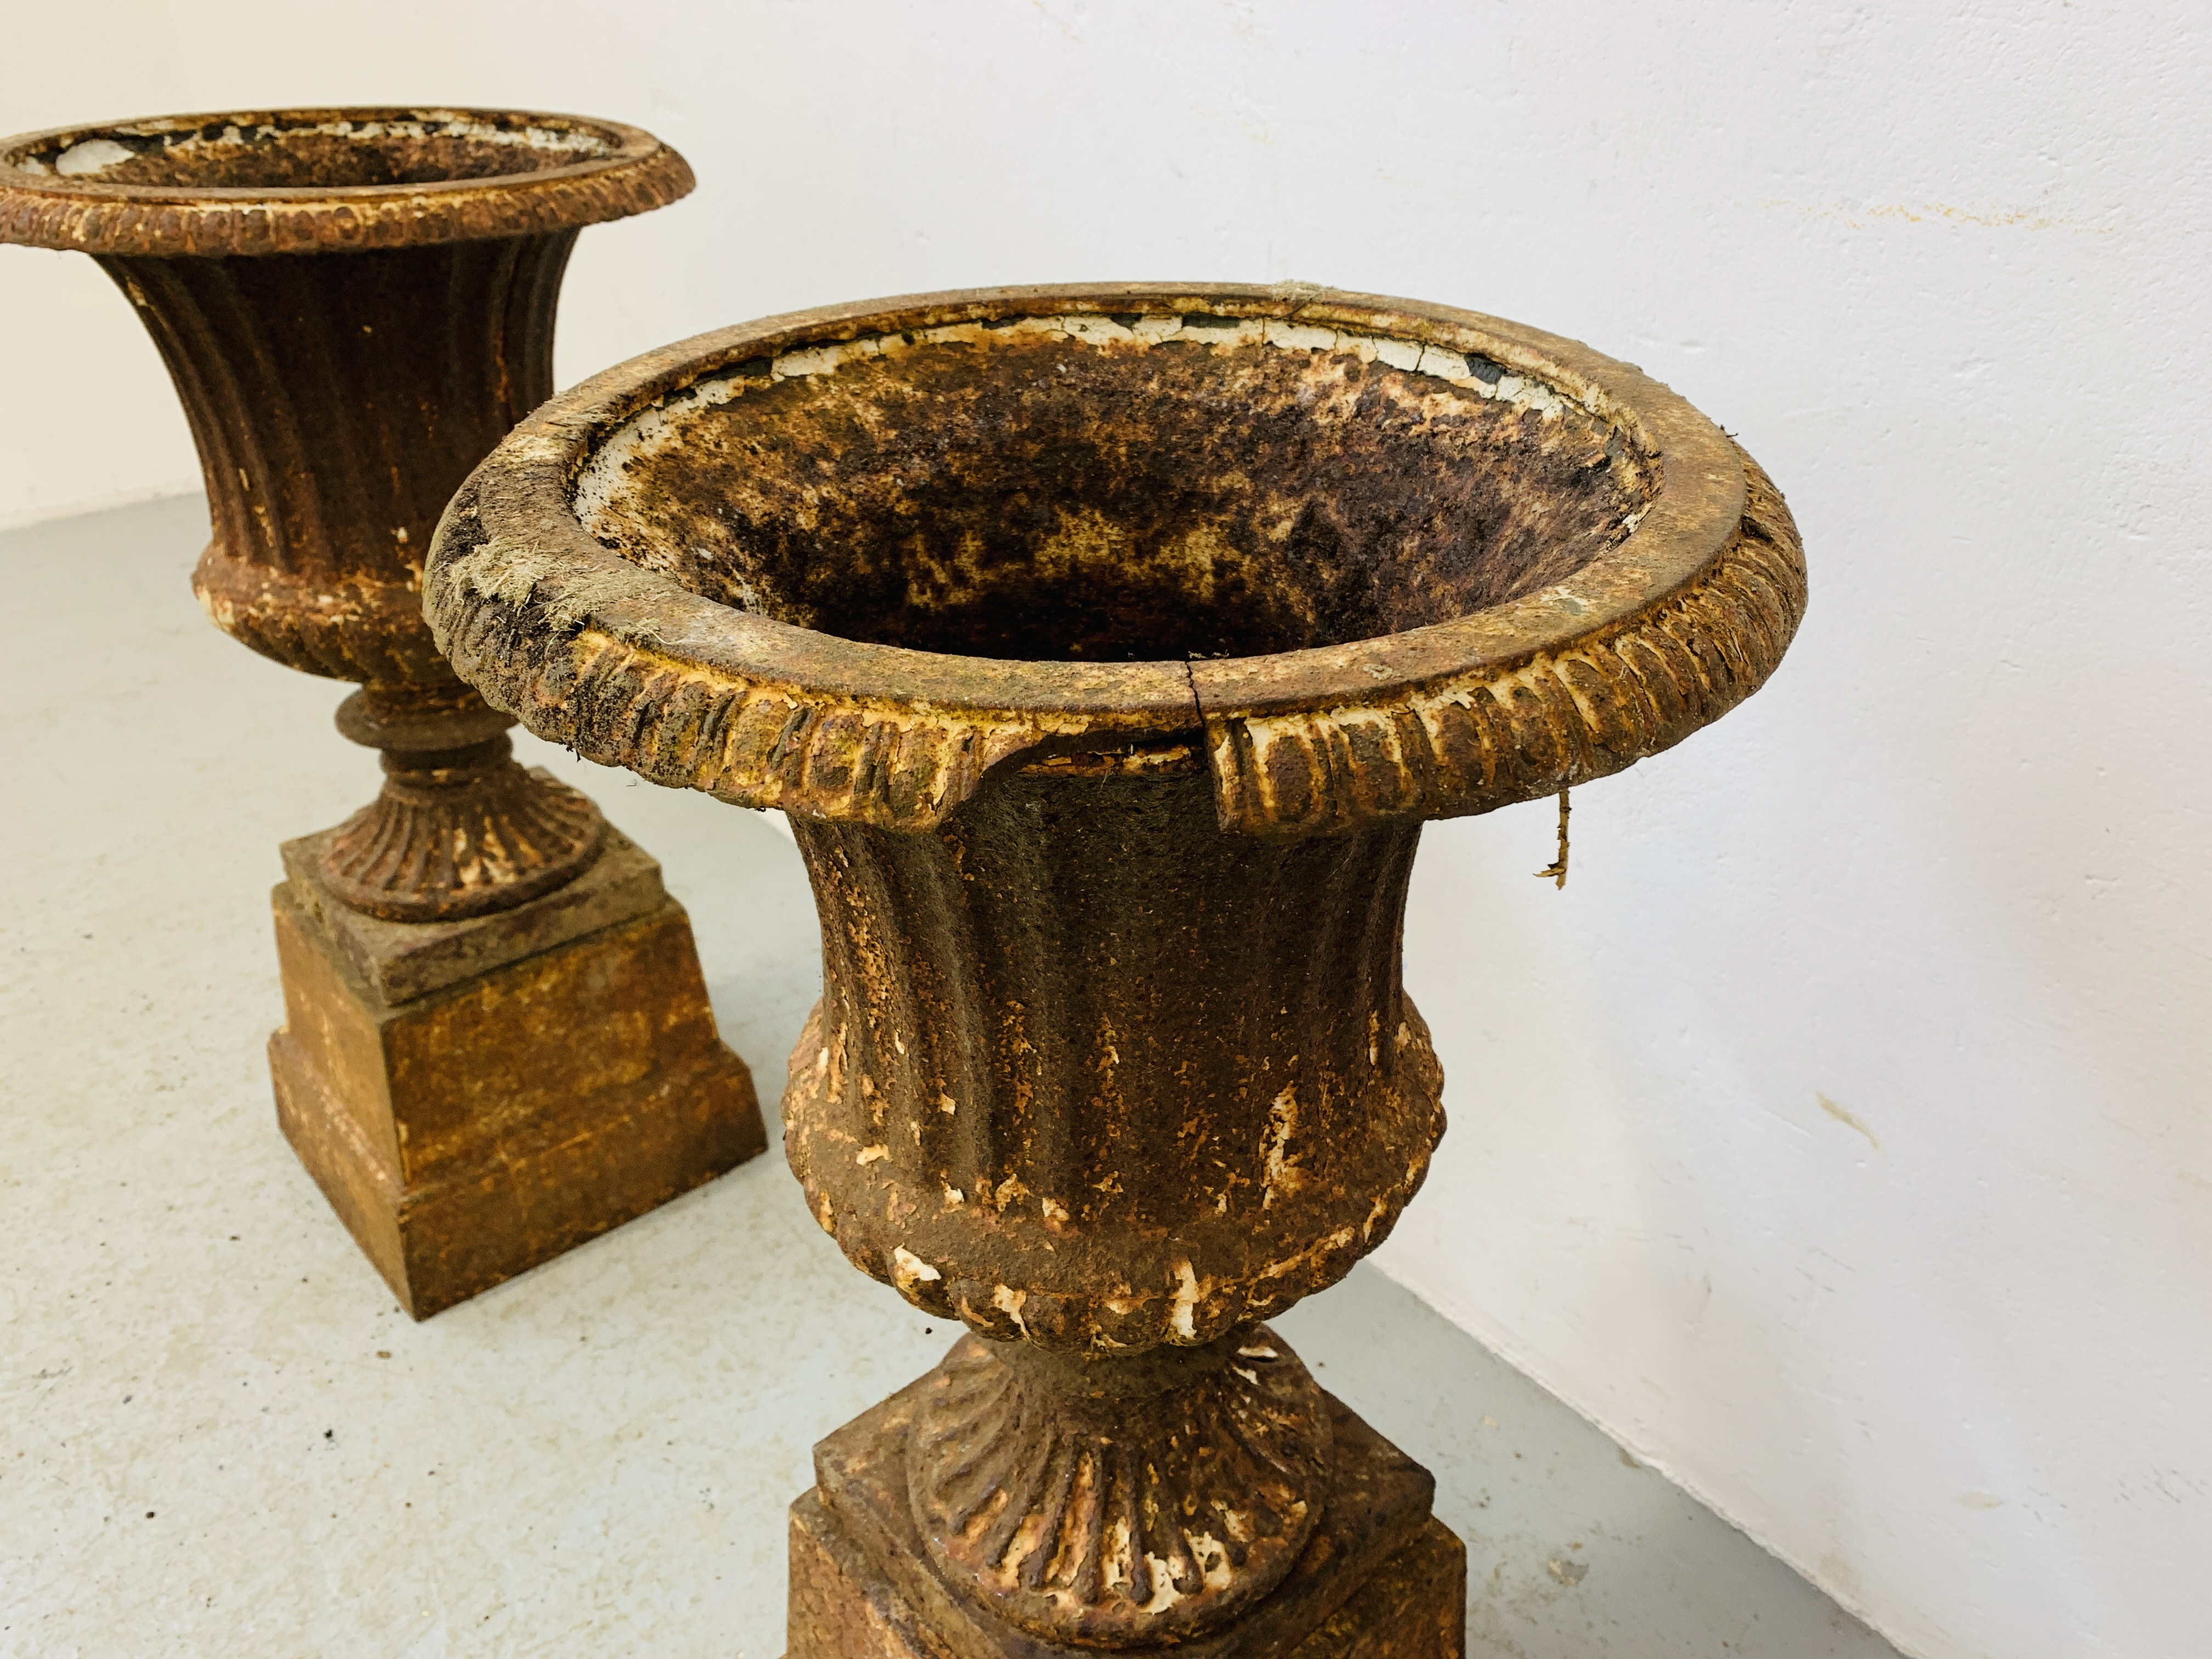 A PAIR OF CAST IRON TULIP SHAPE GARDEN URNS ON STANDS A/F CONDITION - OVERALL HEIGHT 68CM. - Image 10 of 13